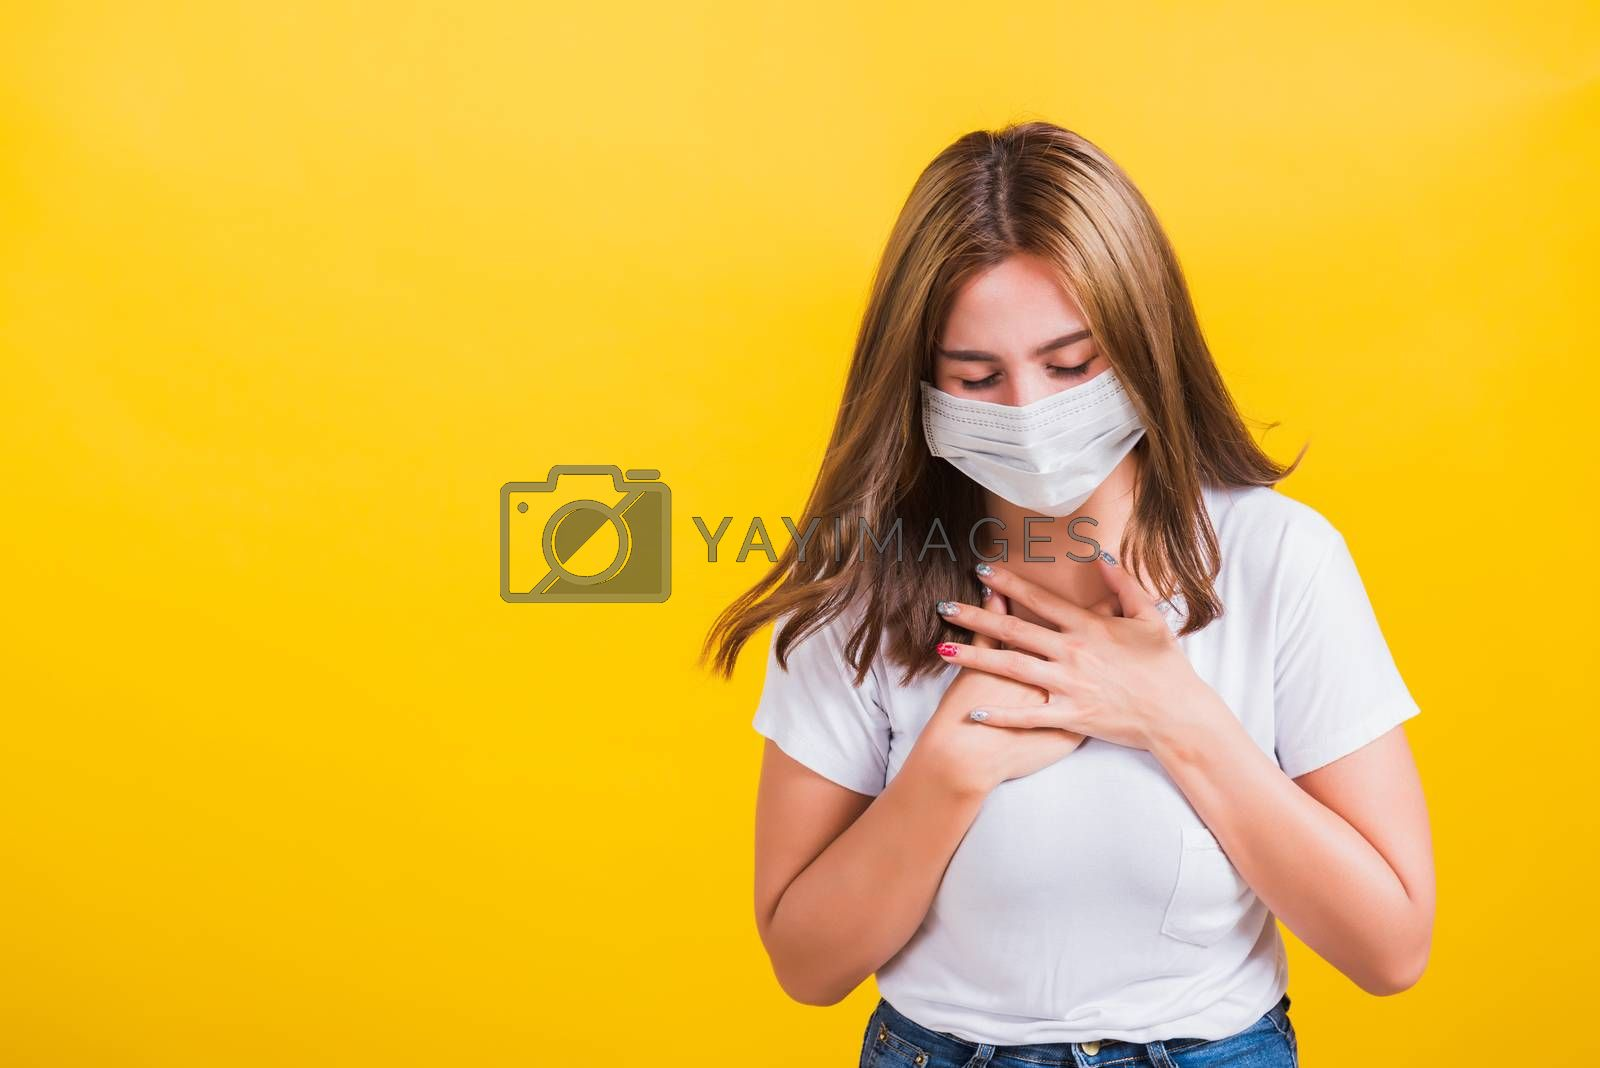 Asian portrait beautiful cute young woman standing wear t-shirt cough in mask protection from COVID virus epidemic or air pollution isolated, studio shot on yellow background with copy space